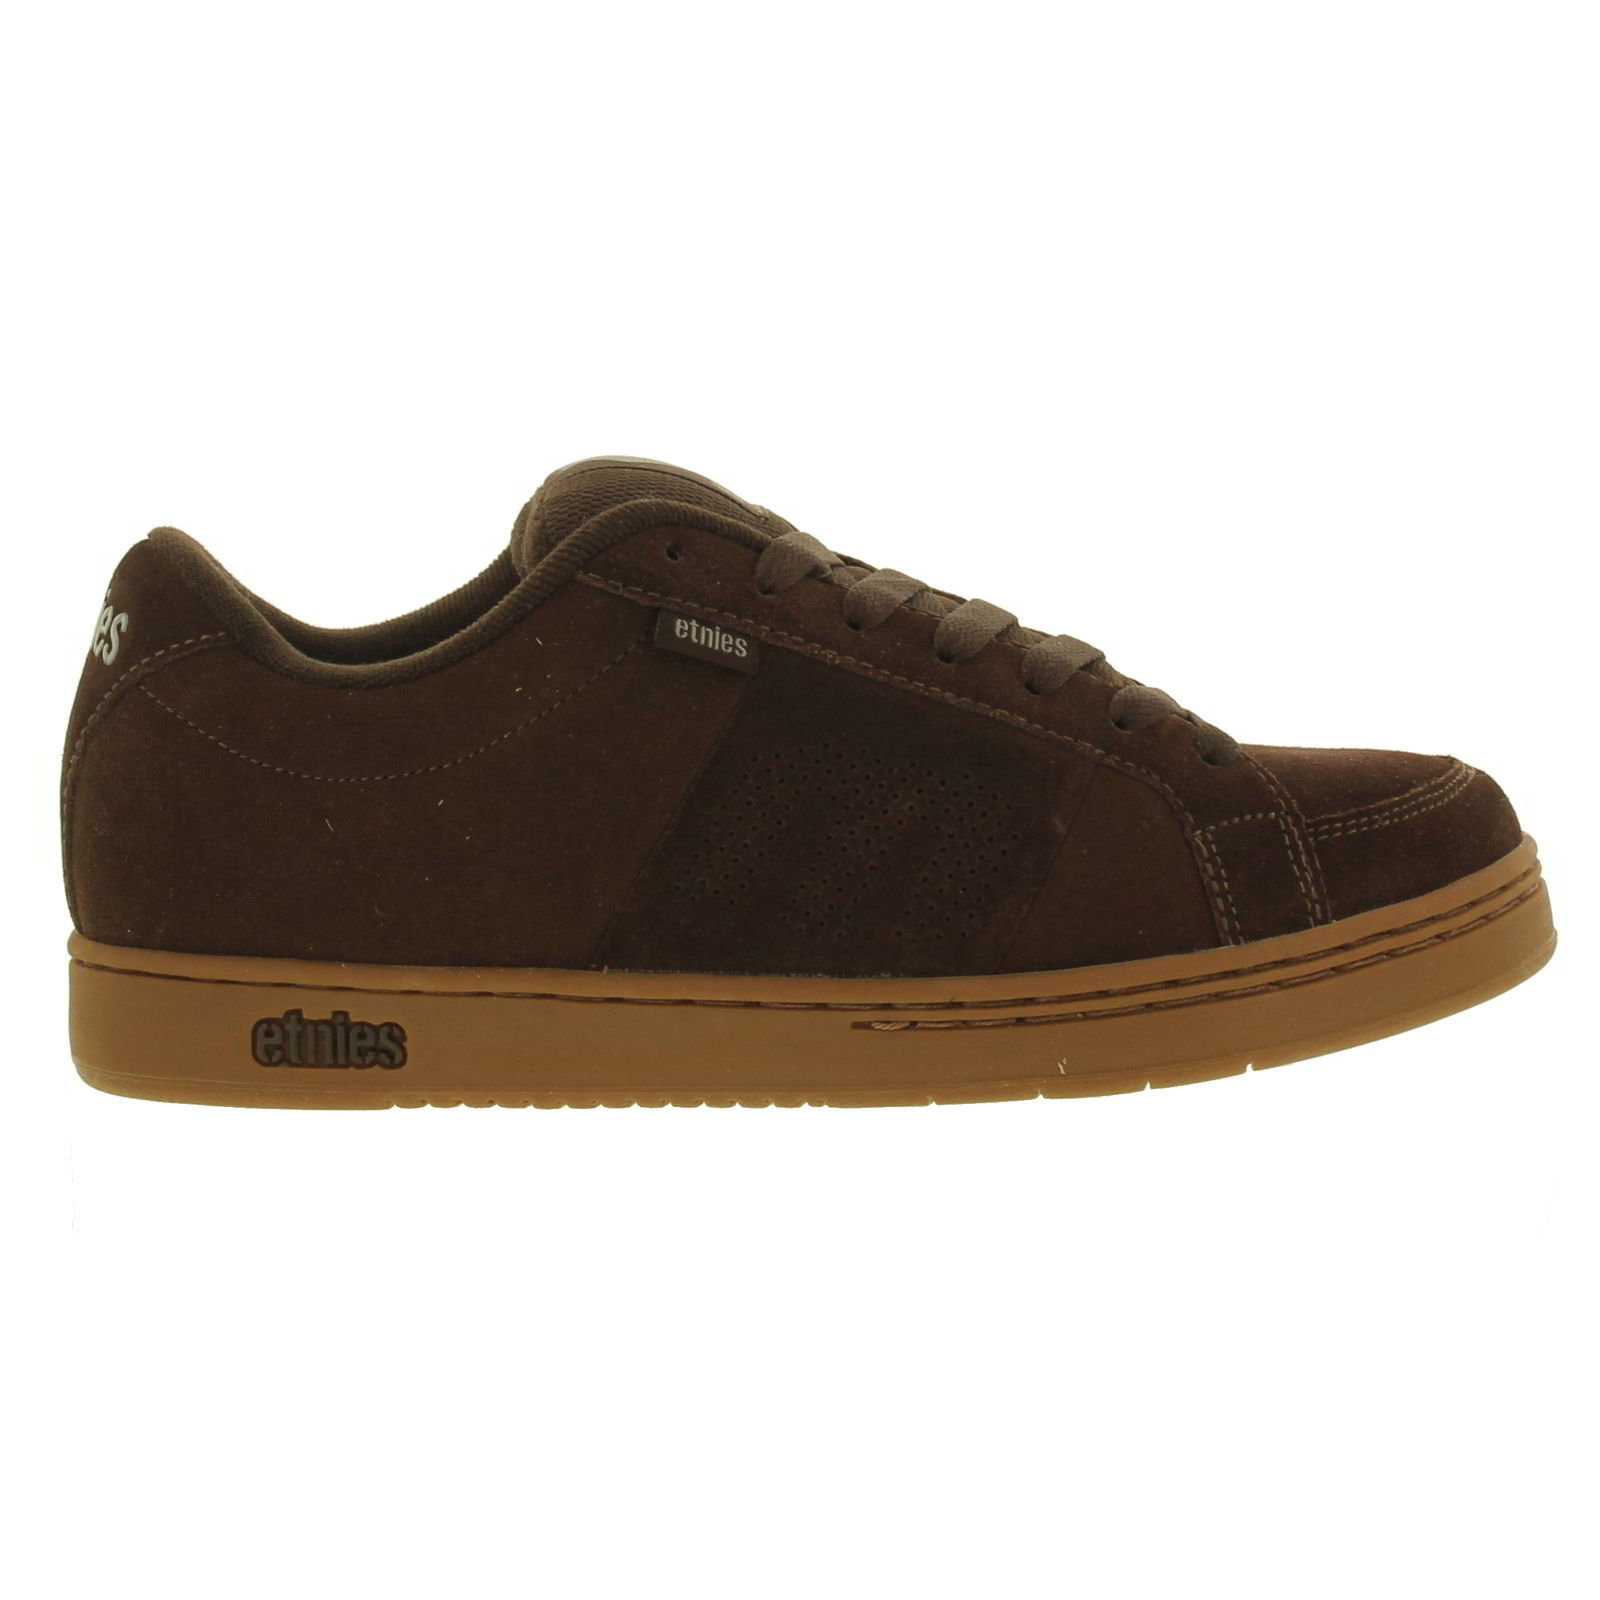 etnies kingpin mens trainers brown suede leather skate